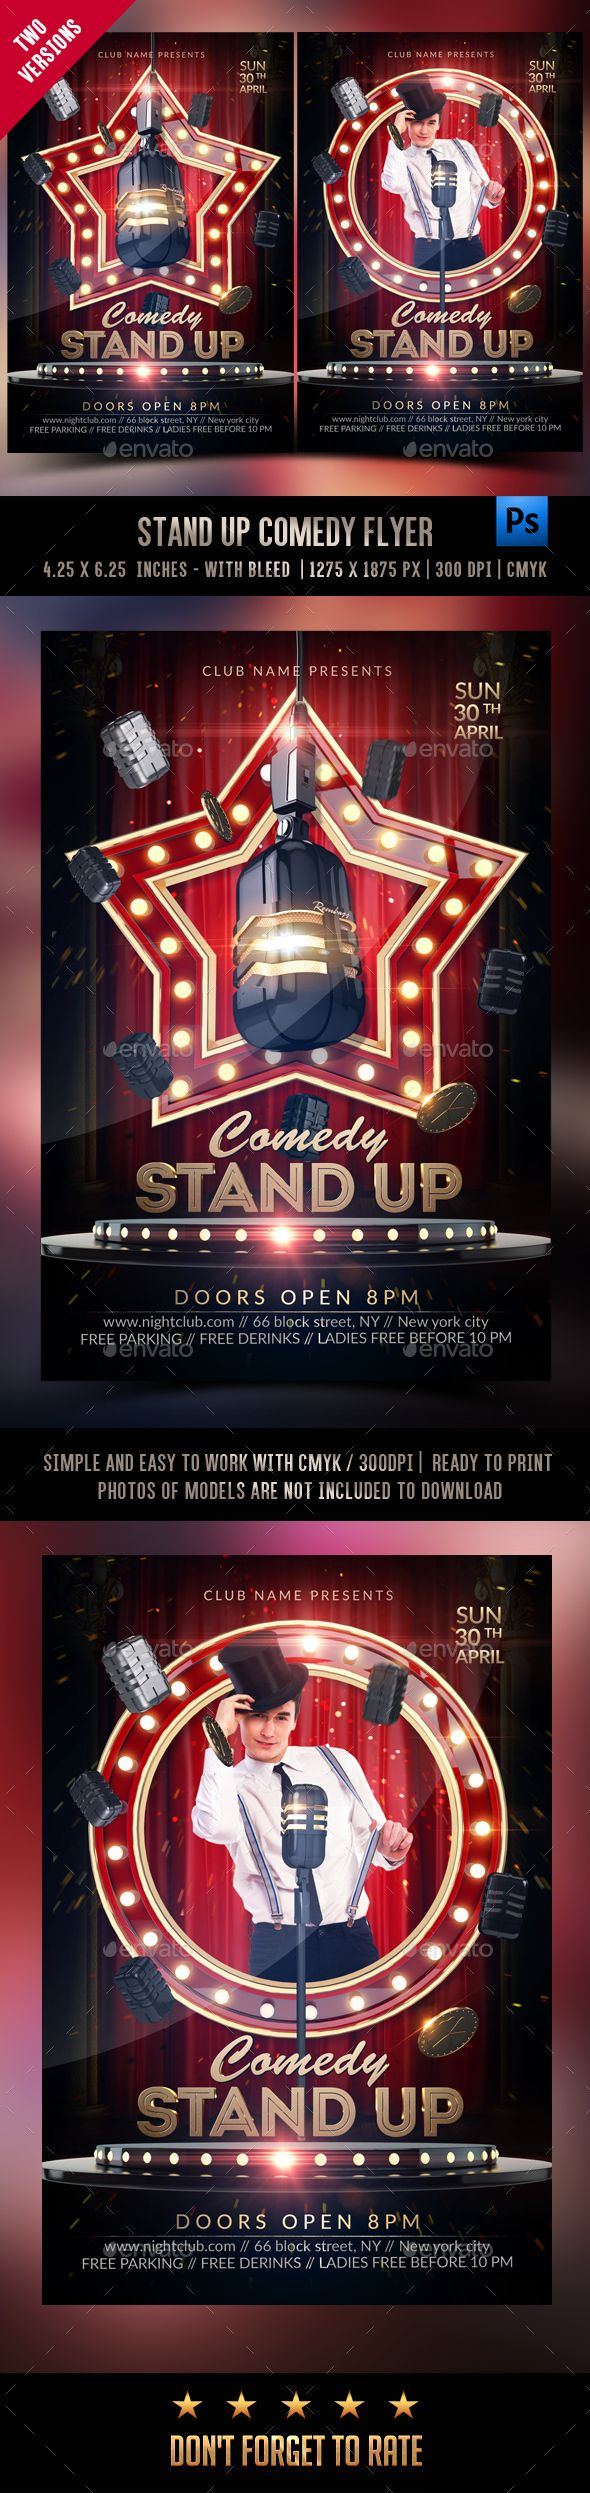 Stand Up Comedy Show Template — Photoshop PSD #comedian #event • Download ➝ https://graphicriver.net/item/stand-up-comedy-show-template/19759016?ref=pxcr